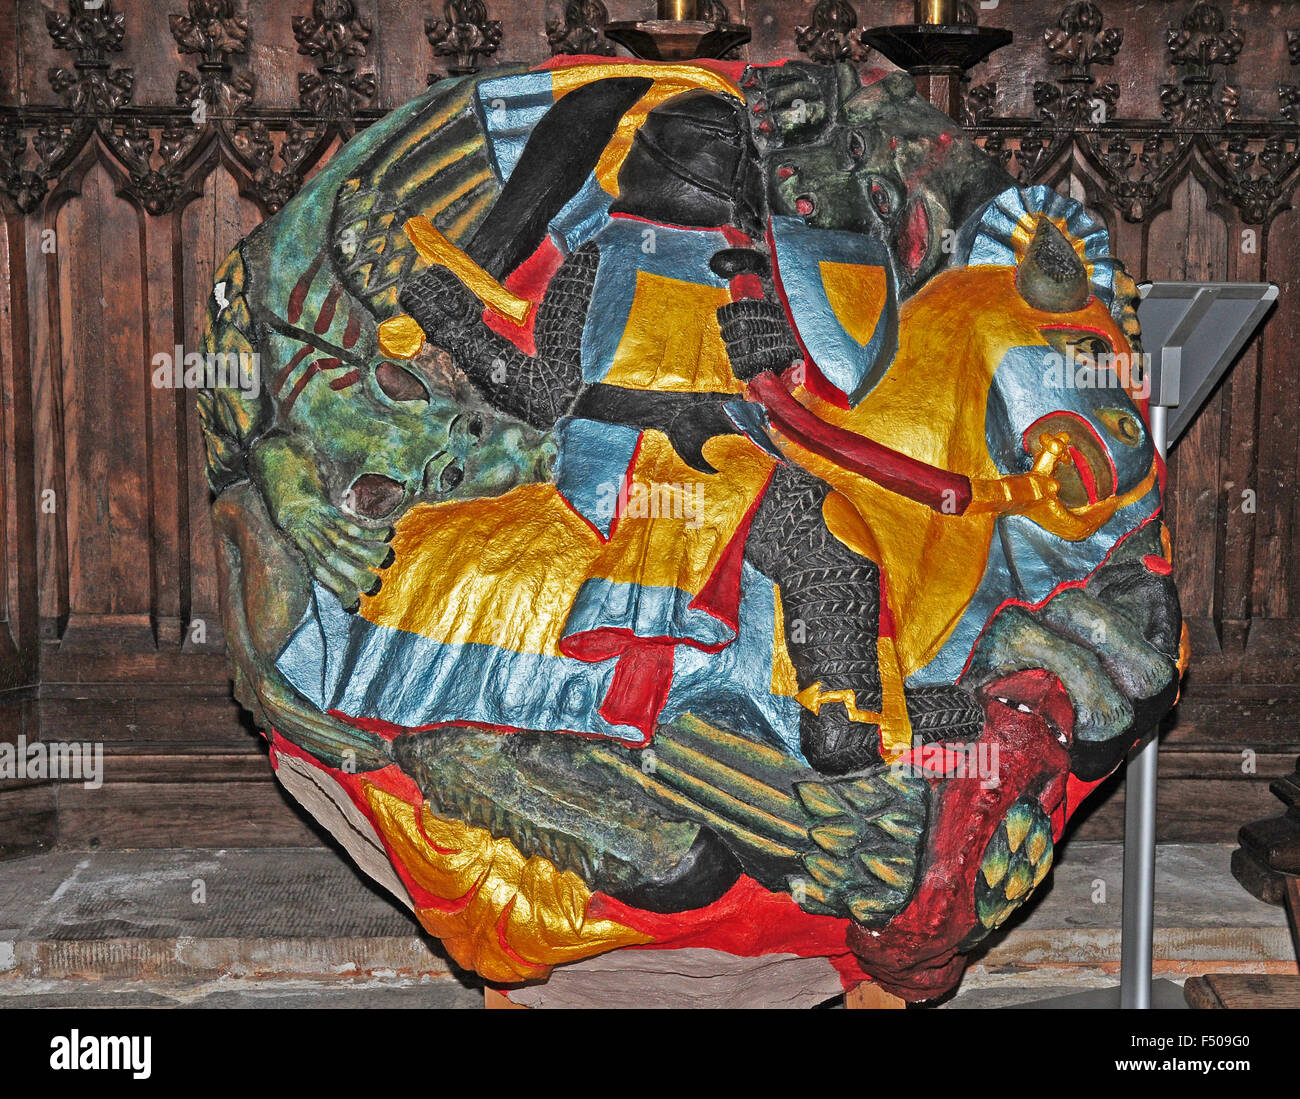 Replica roof boss displayed in Exeter Cathedral. The original weighed approximately two tons. - Stock Image